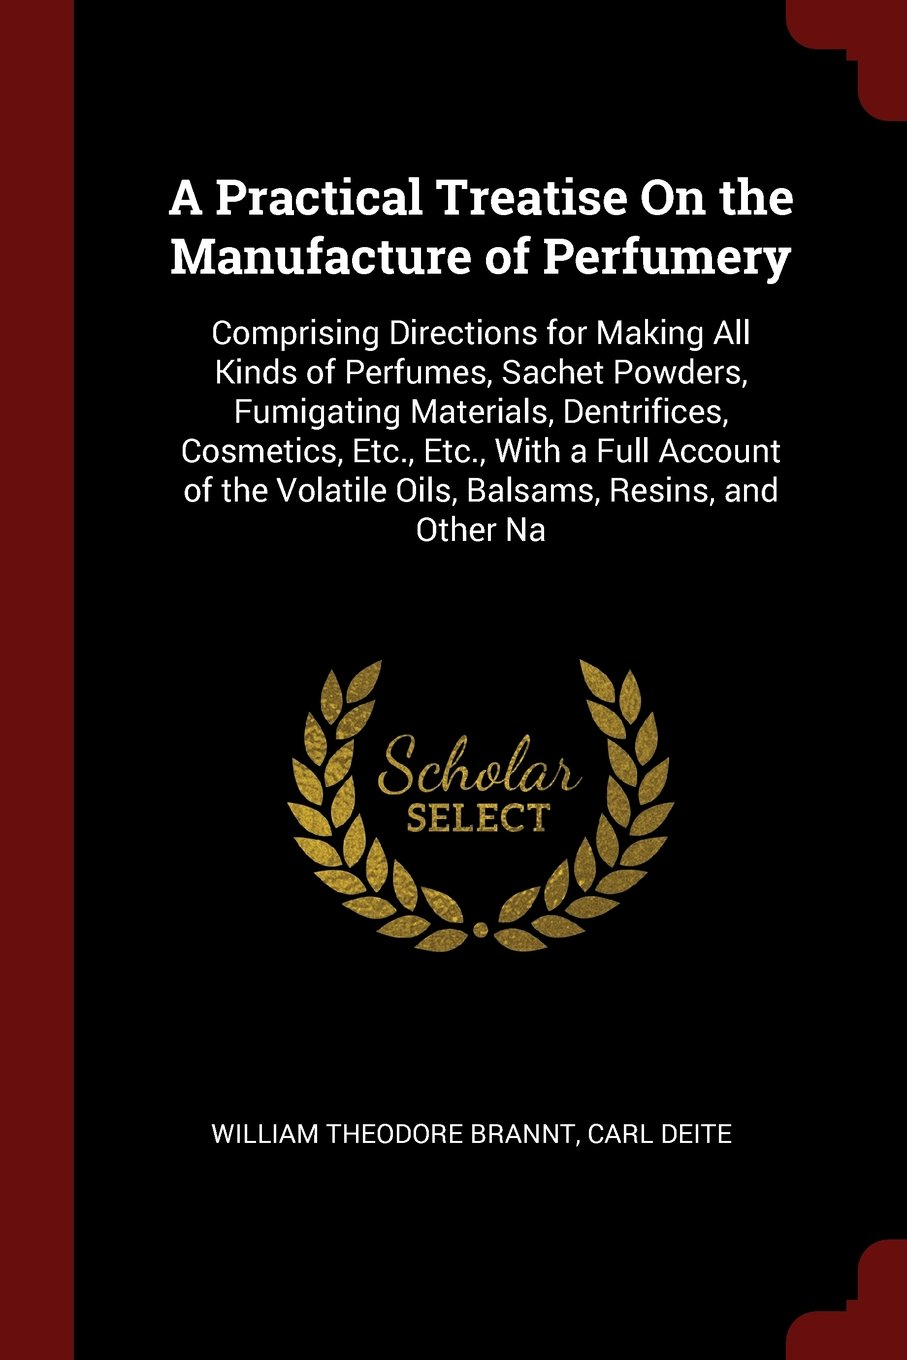 Download A Practical Treatise On the Manufacture of Perfumery: Comprising Directions for Making All Kinds of Perfumes, Sachet Powders, Fumigating Materials. Volatile Oils, Balsams, Resins, and Other Na pdf epub